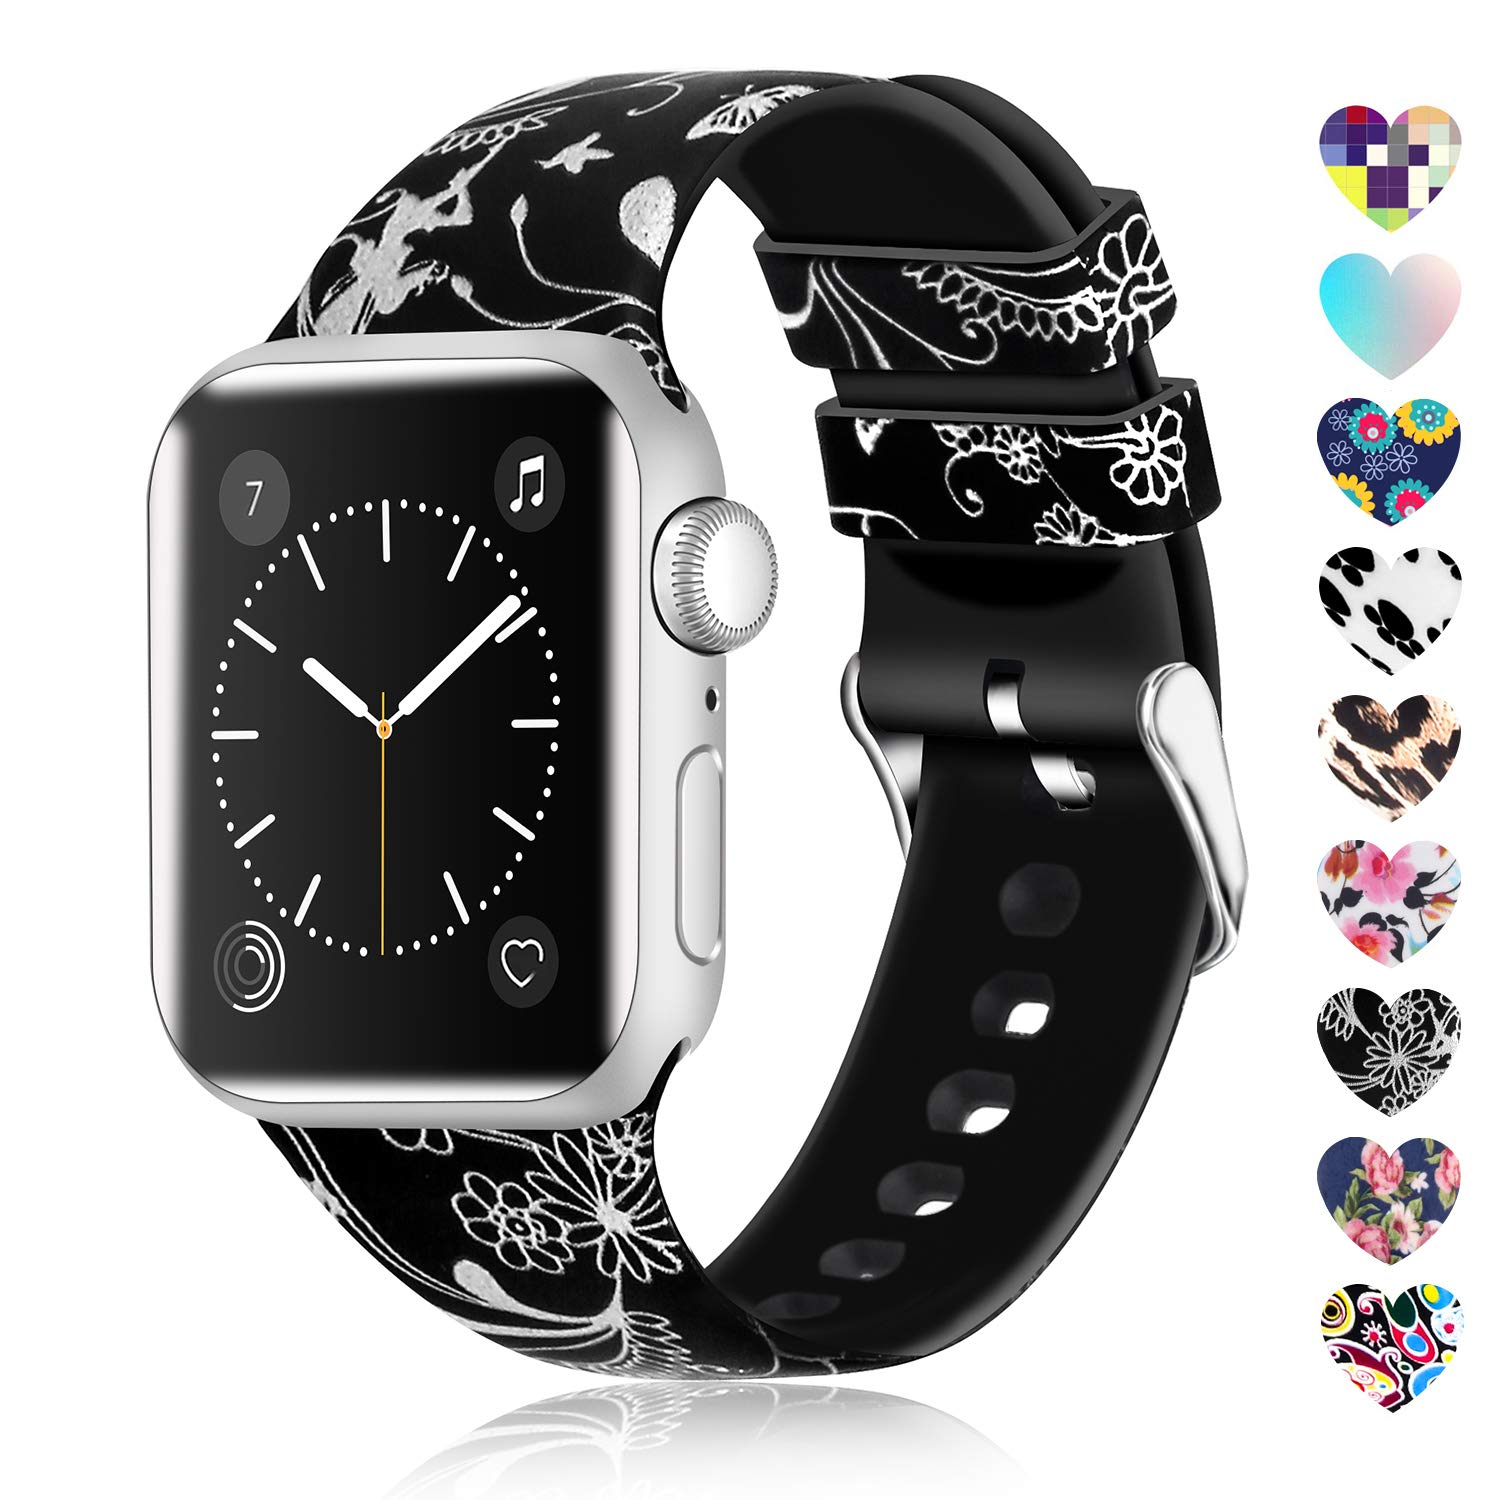 Malla Silicona para Apple Watch (42/44mm) LWSENGME [FGF1KNG]